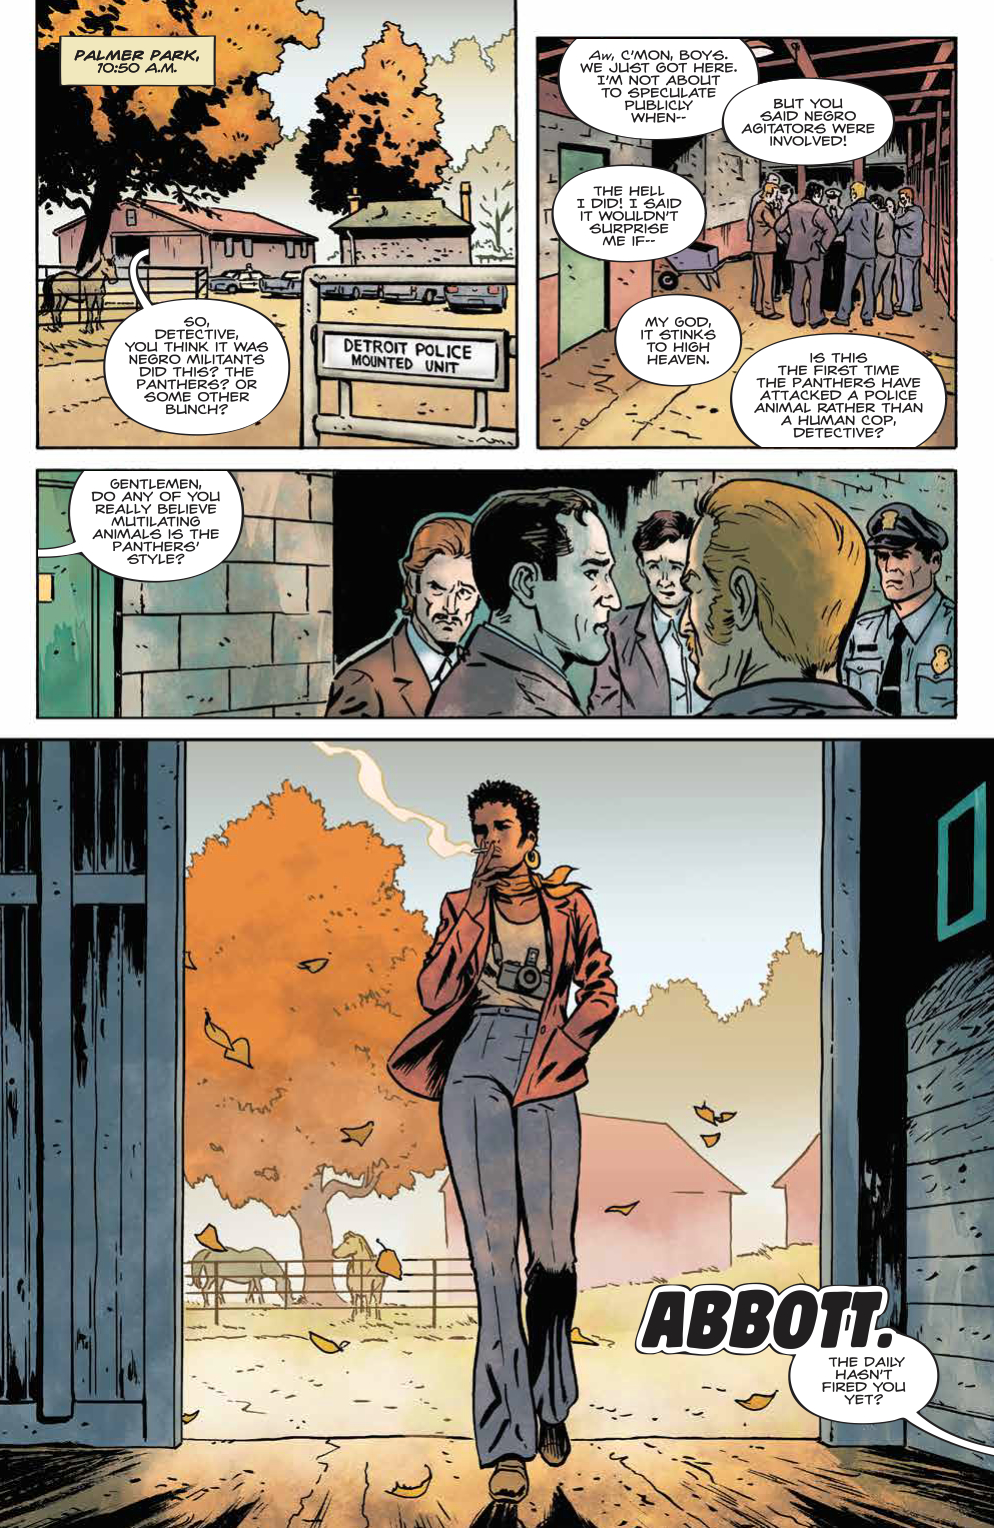 Abbott #1 preview page 2